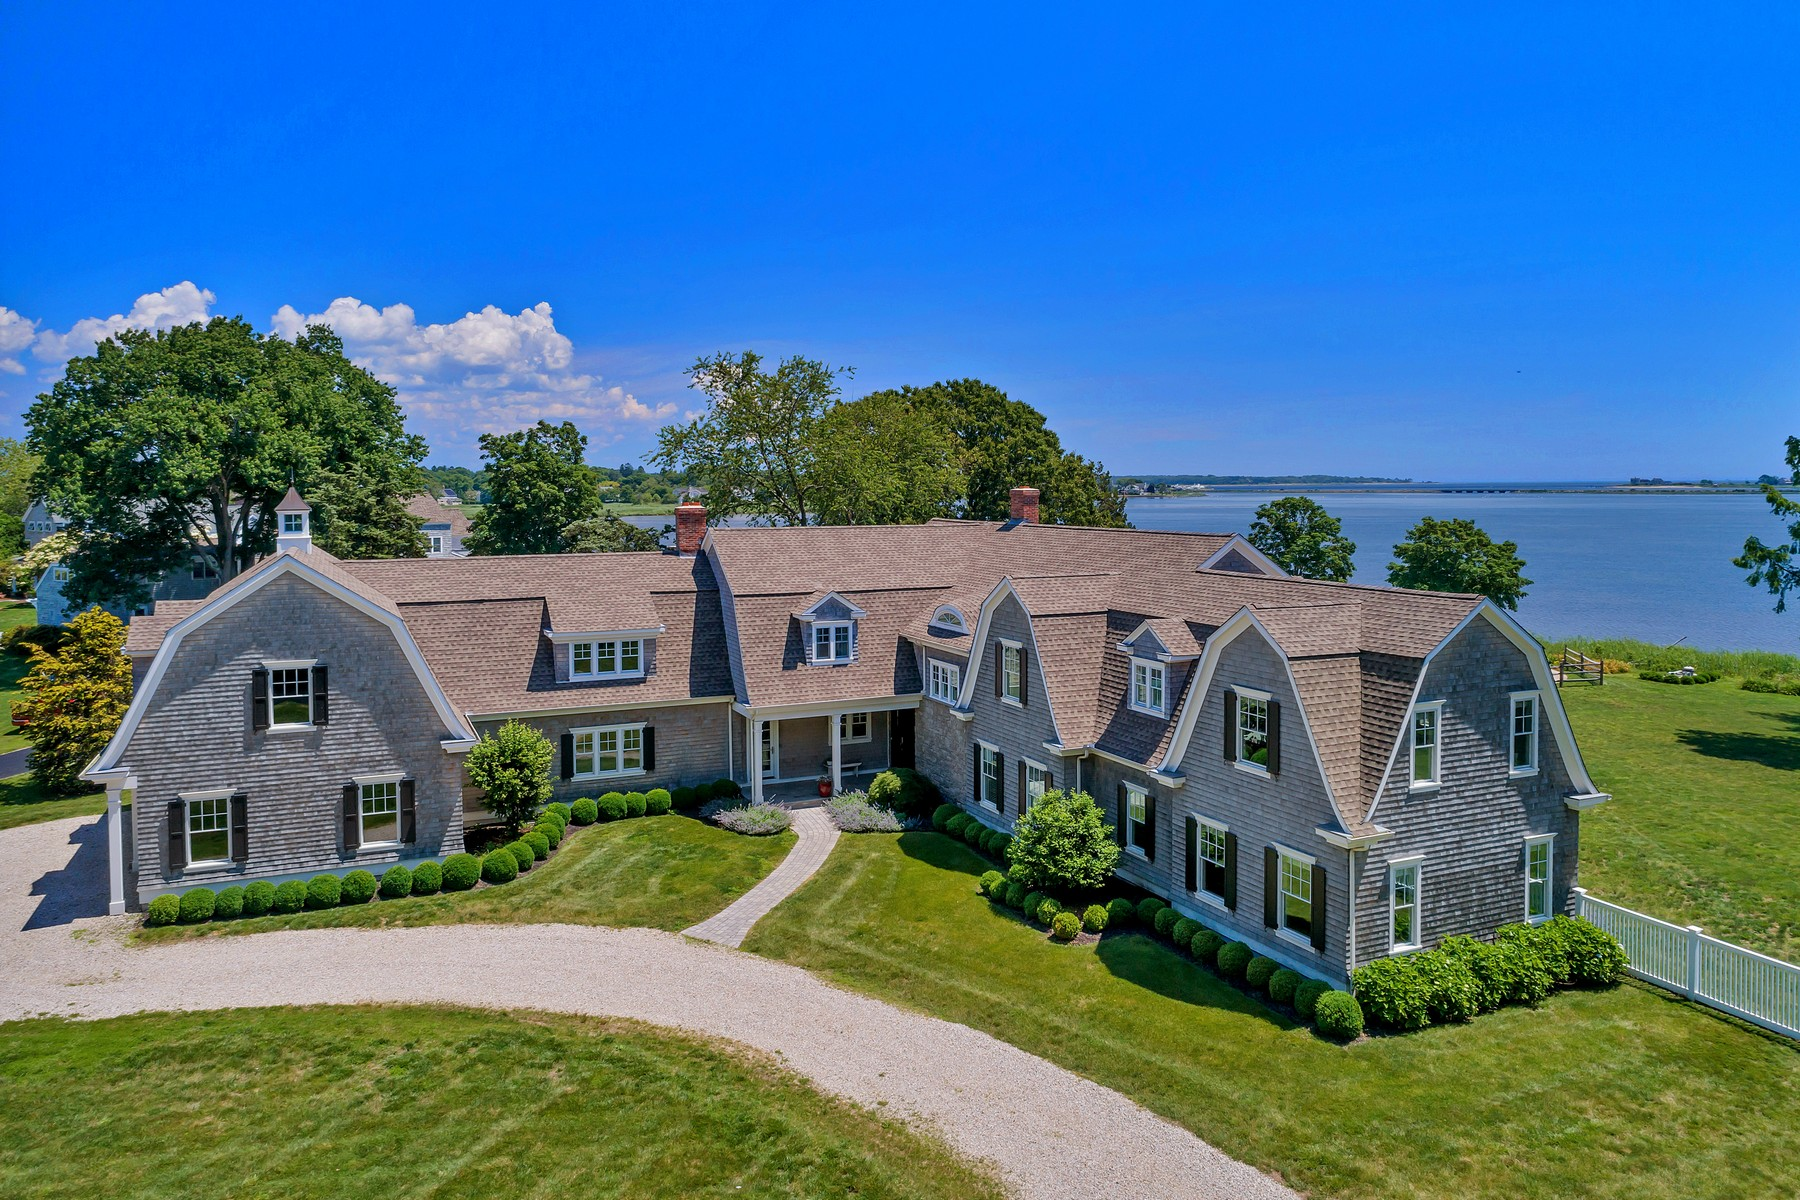 Single Family Homes for Sale at Hamptons Style Waterfront Residence 9 Cedar Lane Old Saybrook, Connecticut 06475 United States